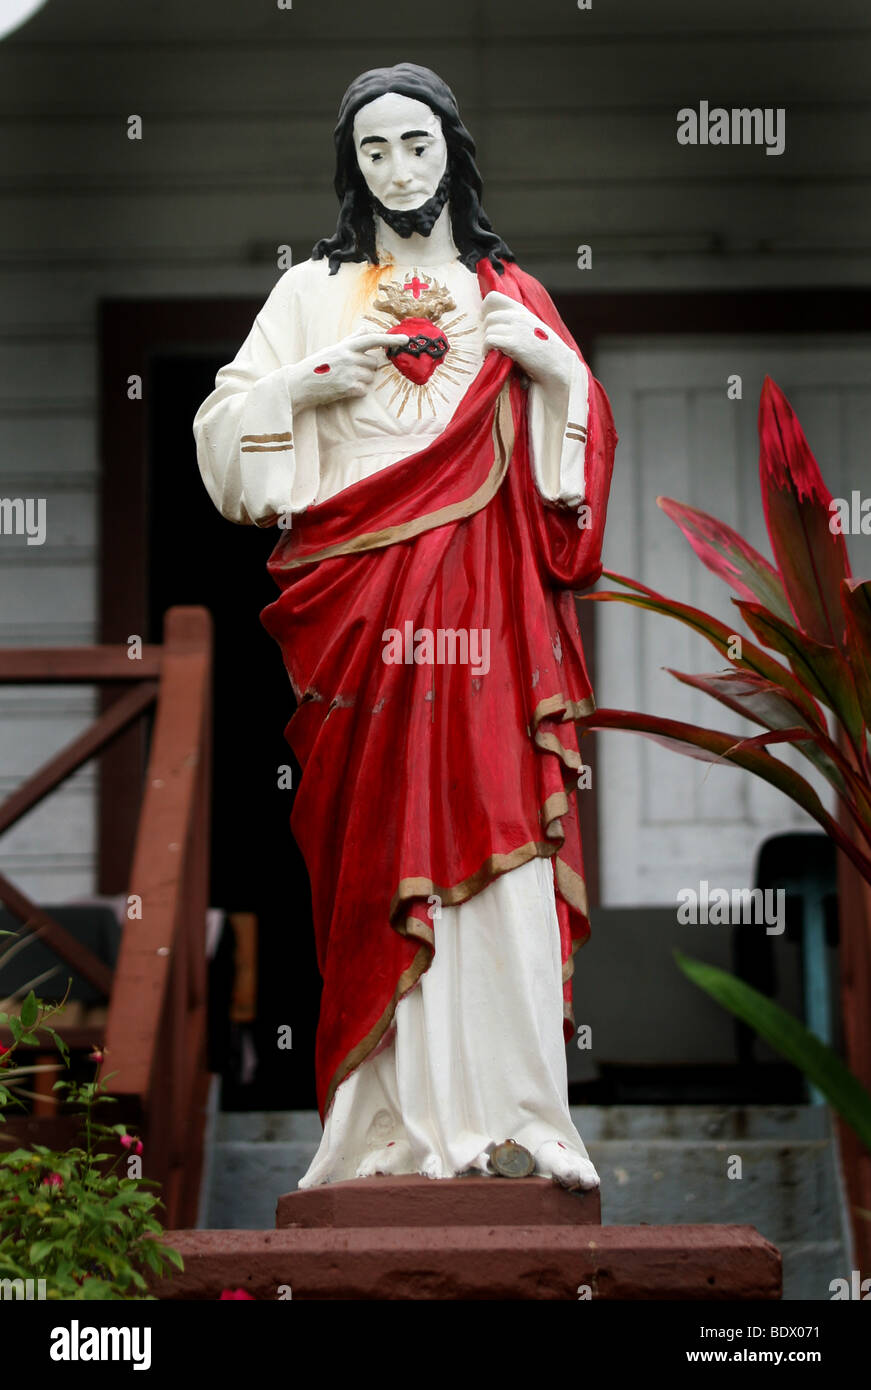 A statue of Christ reflects the Spanish origins of Tongan Christianity in Vavau Tonga. - Stock Image